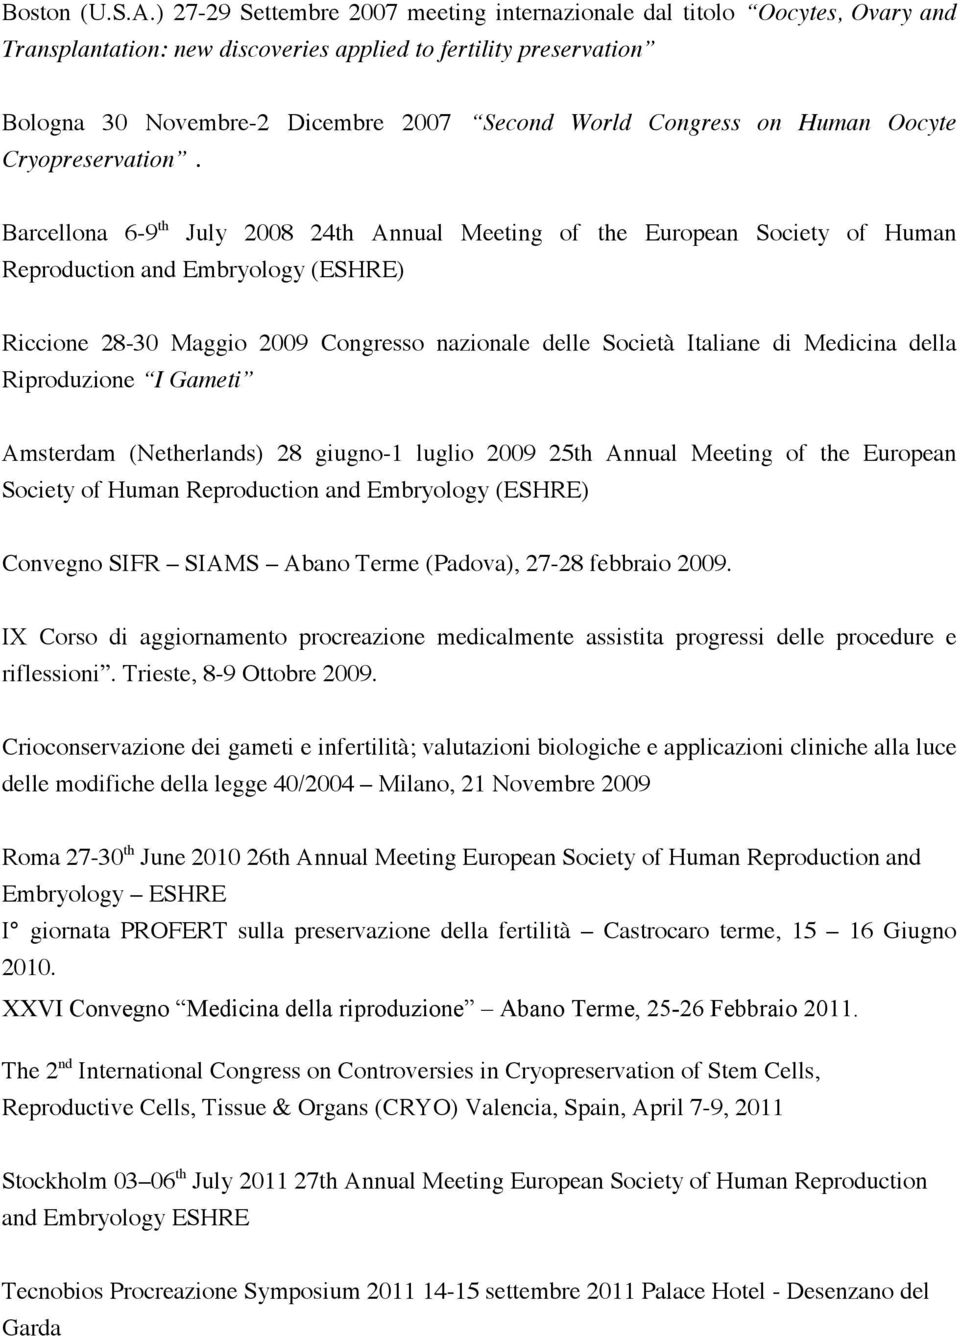 Congress on Human Oocyte Cryopreservation.